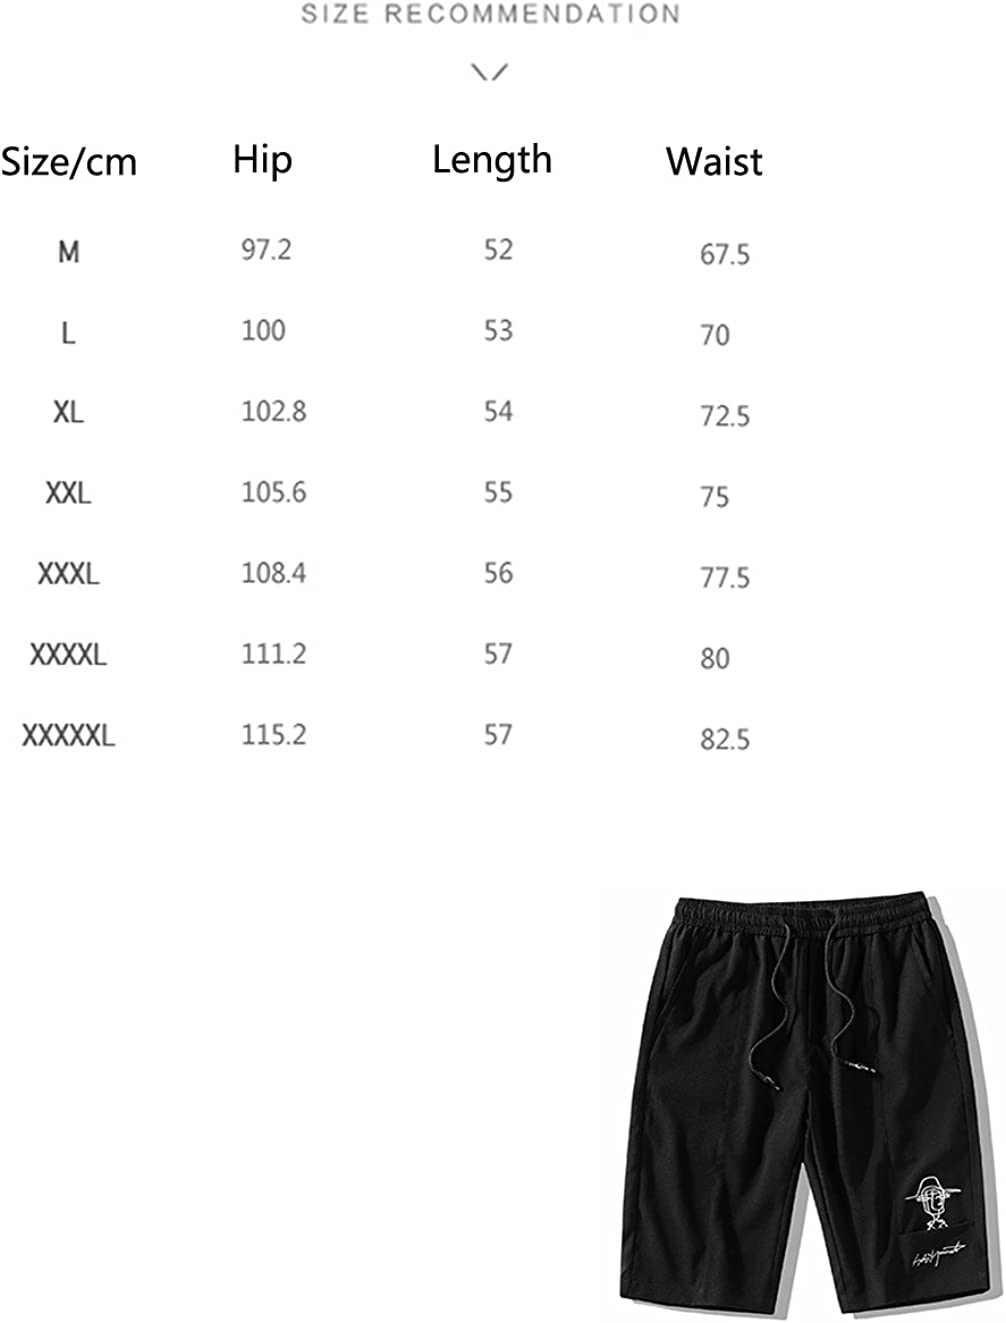 Mens Casual Shorts Classic Drawstring Elasticated Waist Summer Beach Shorts for Men